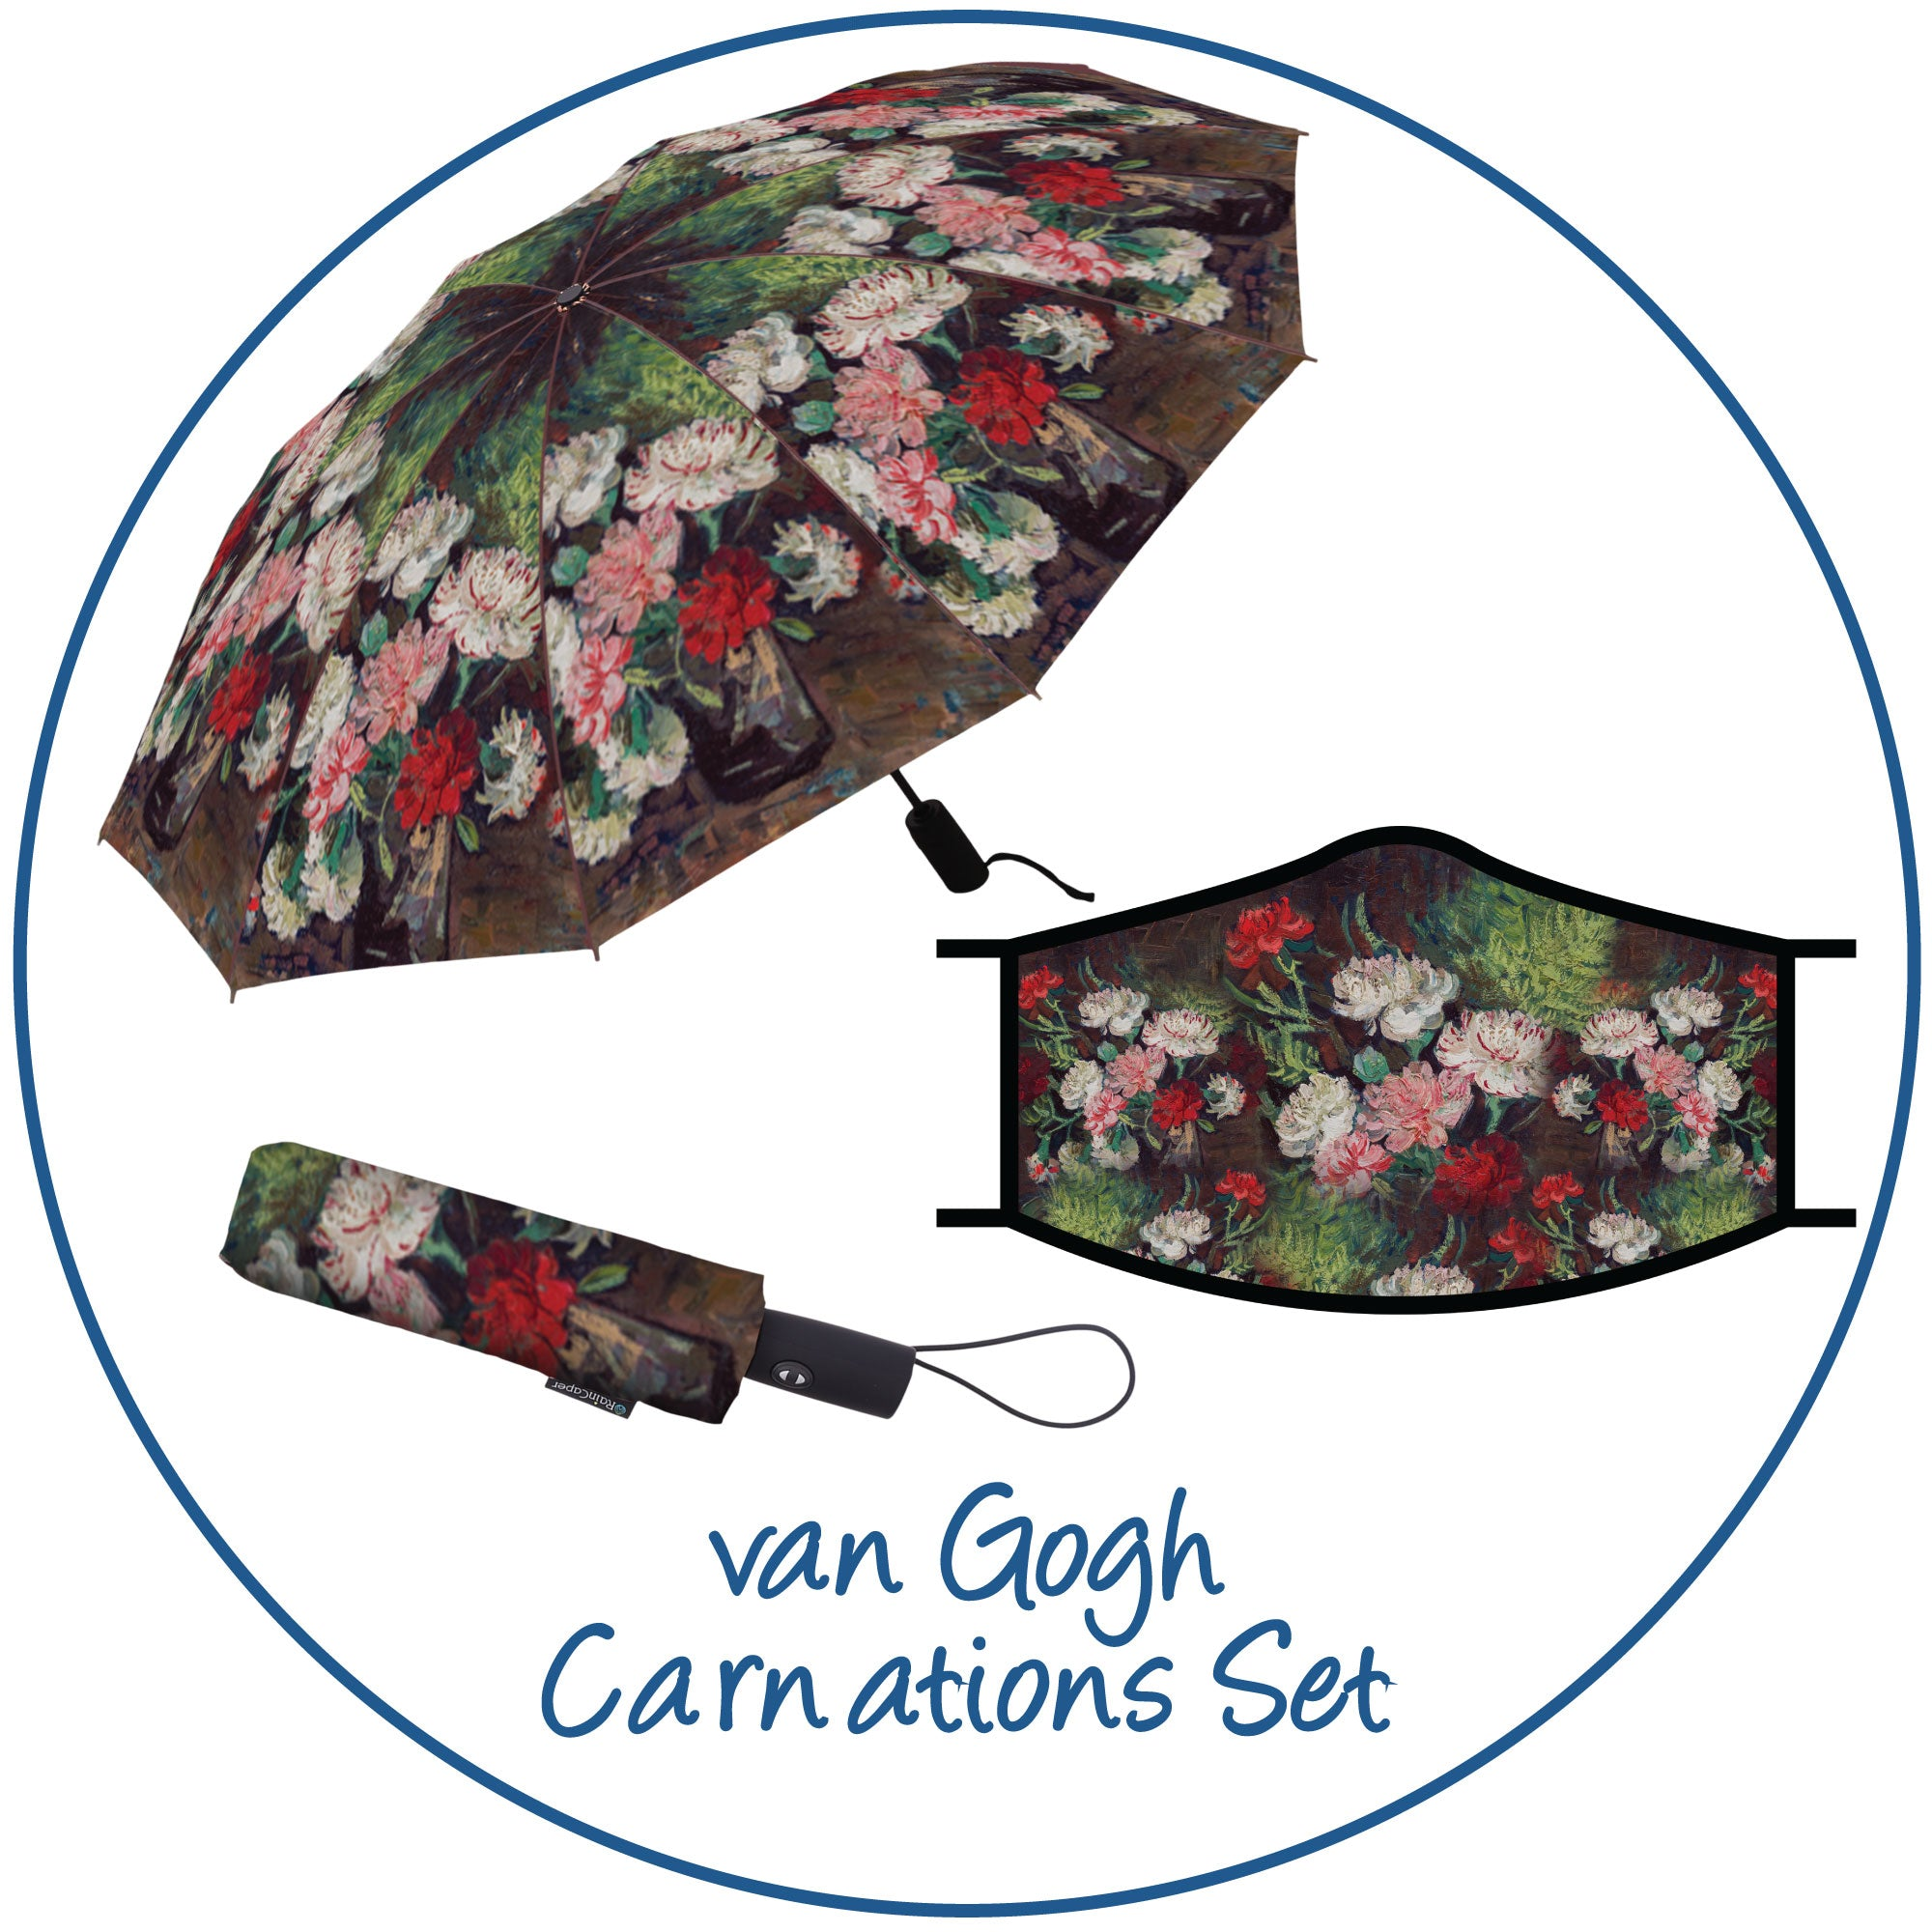 van Gogh Still Life with Carnations print folding travel umbrella with sleeve, paired with a matching van Gogh Still Life with Carnations  print reusable cloth face mask